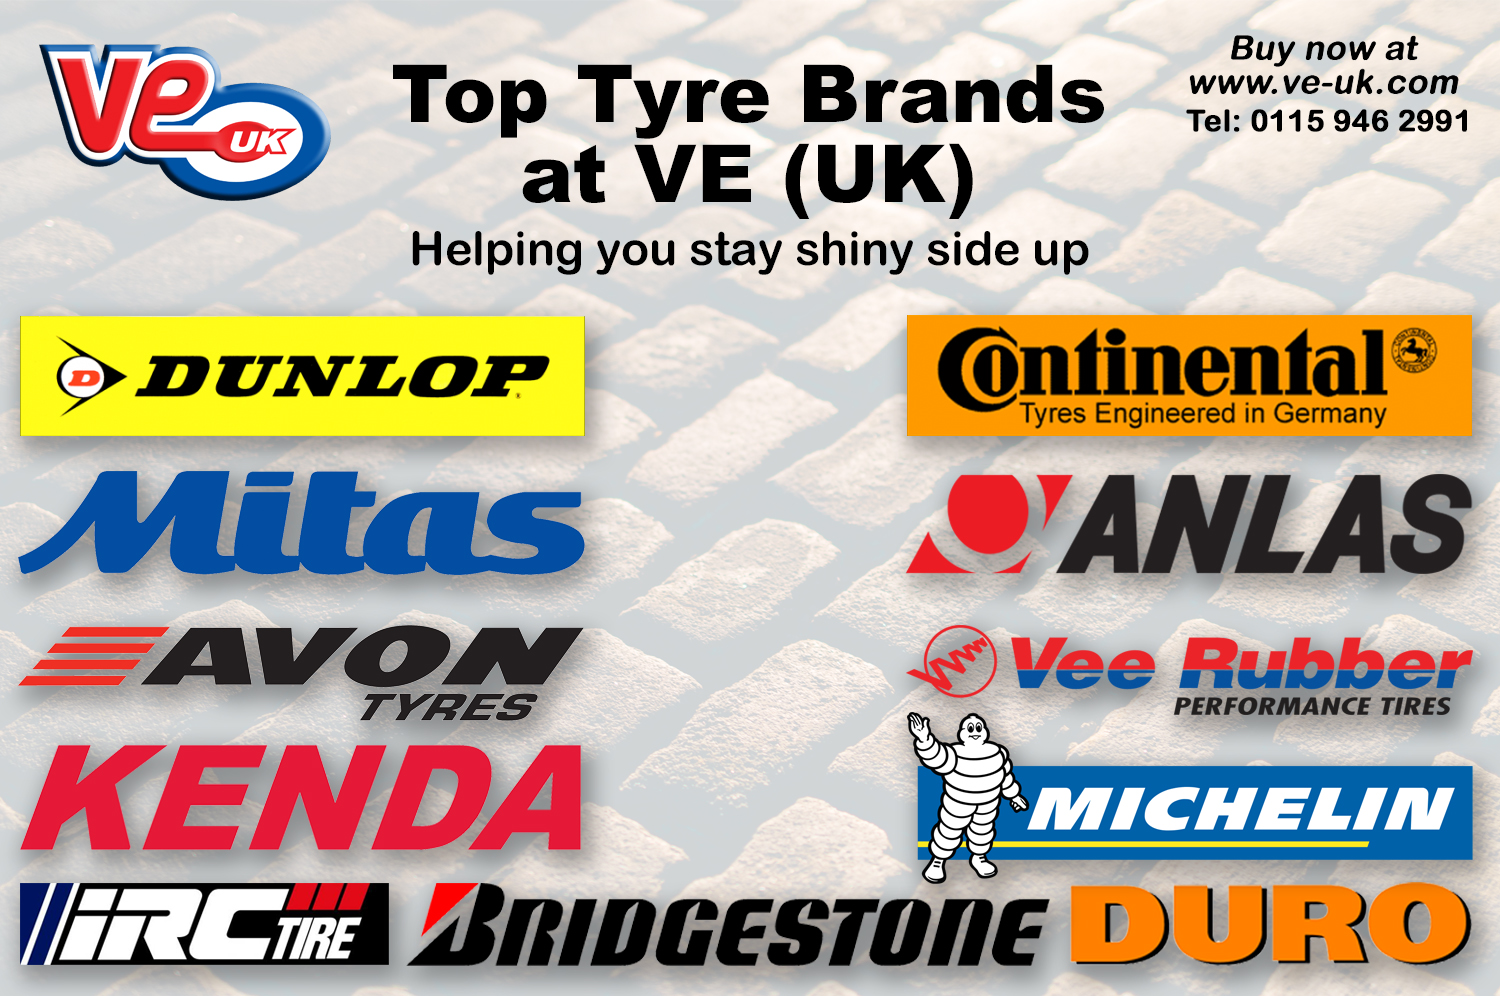 Top tyre brands